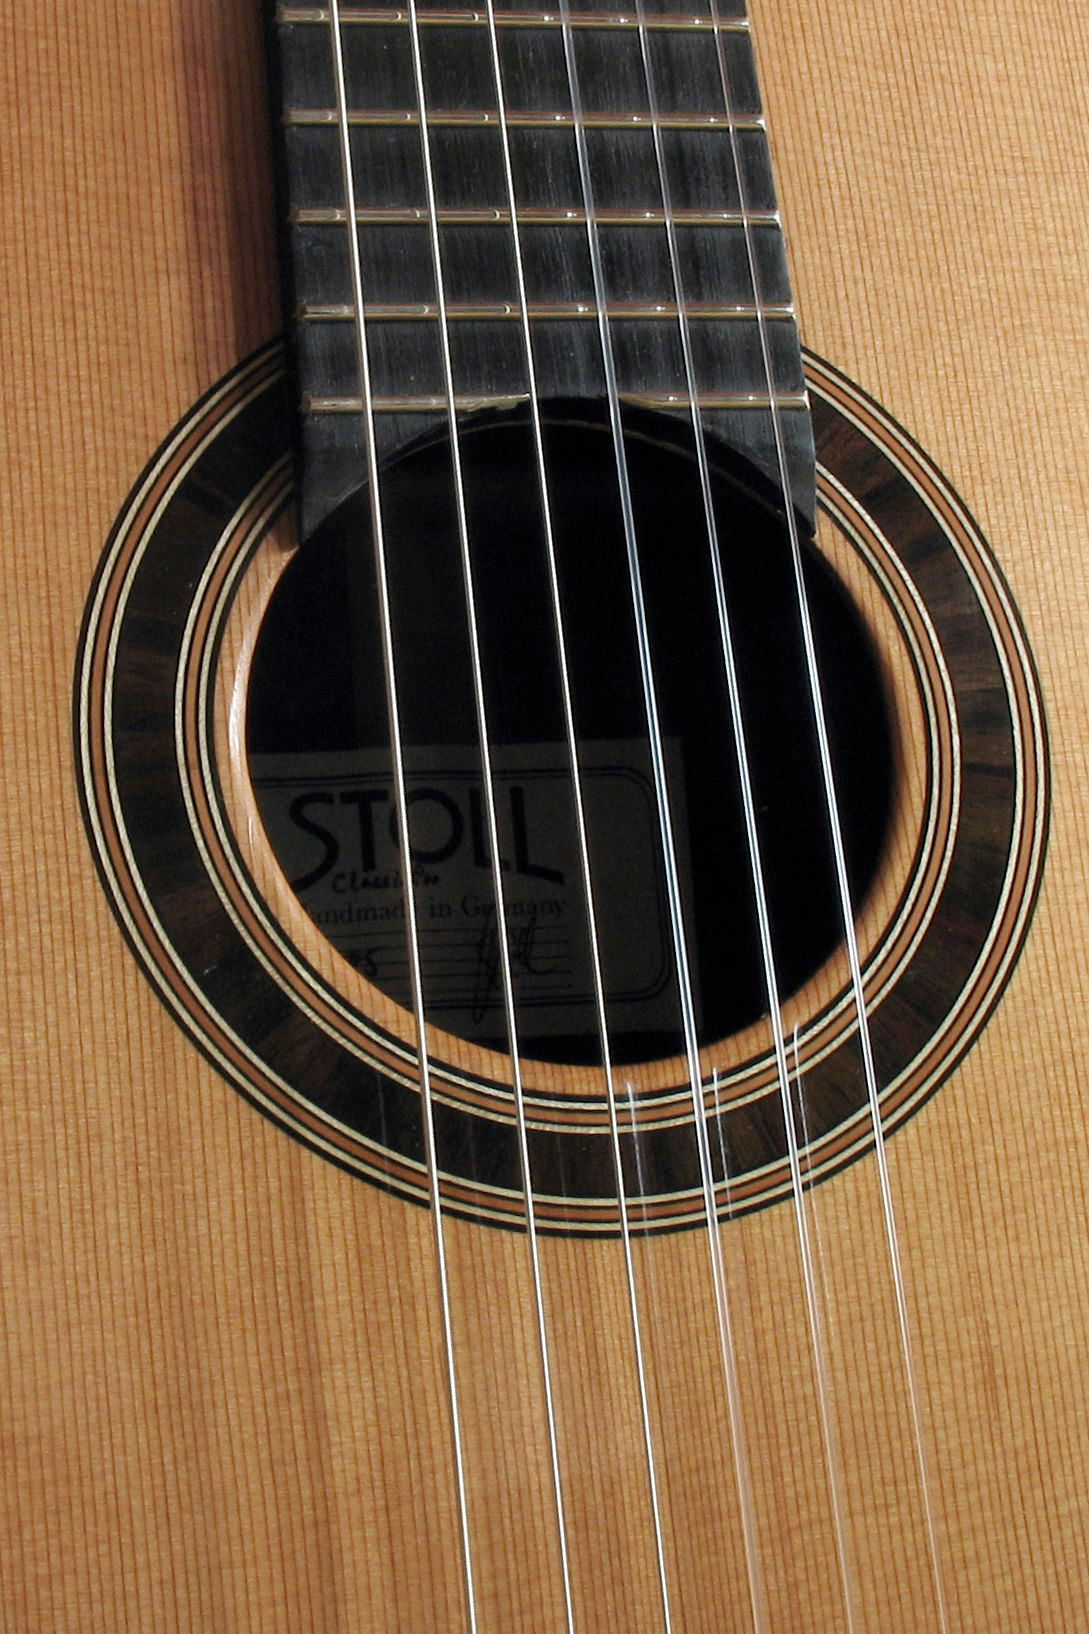 Nylonstring Guitar Classic Line Proscale length 63 cm with wide neck Rosette